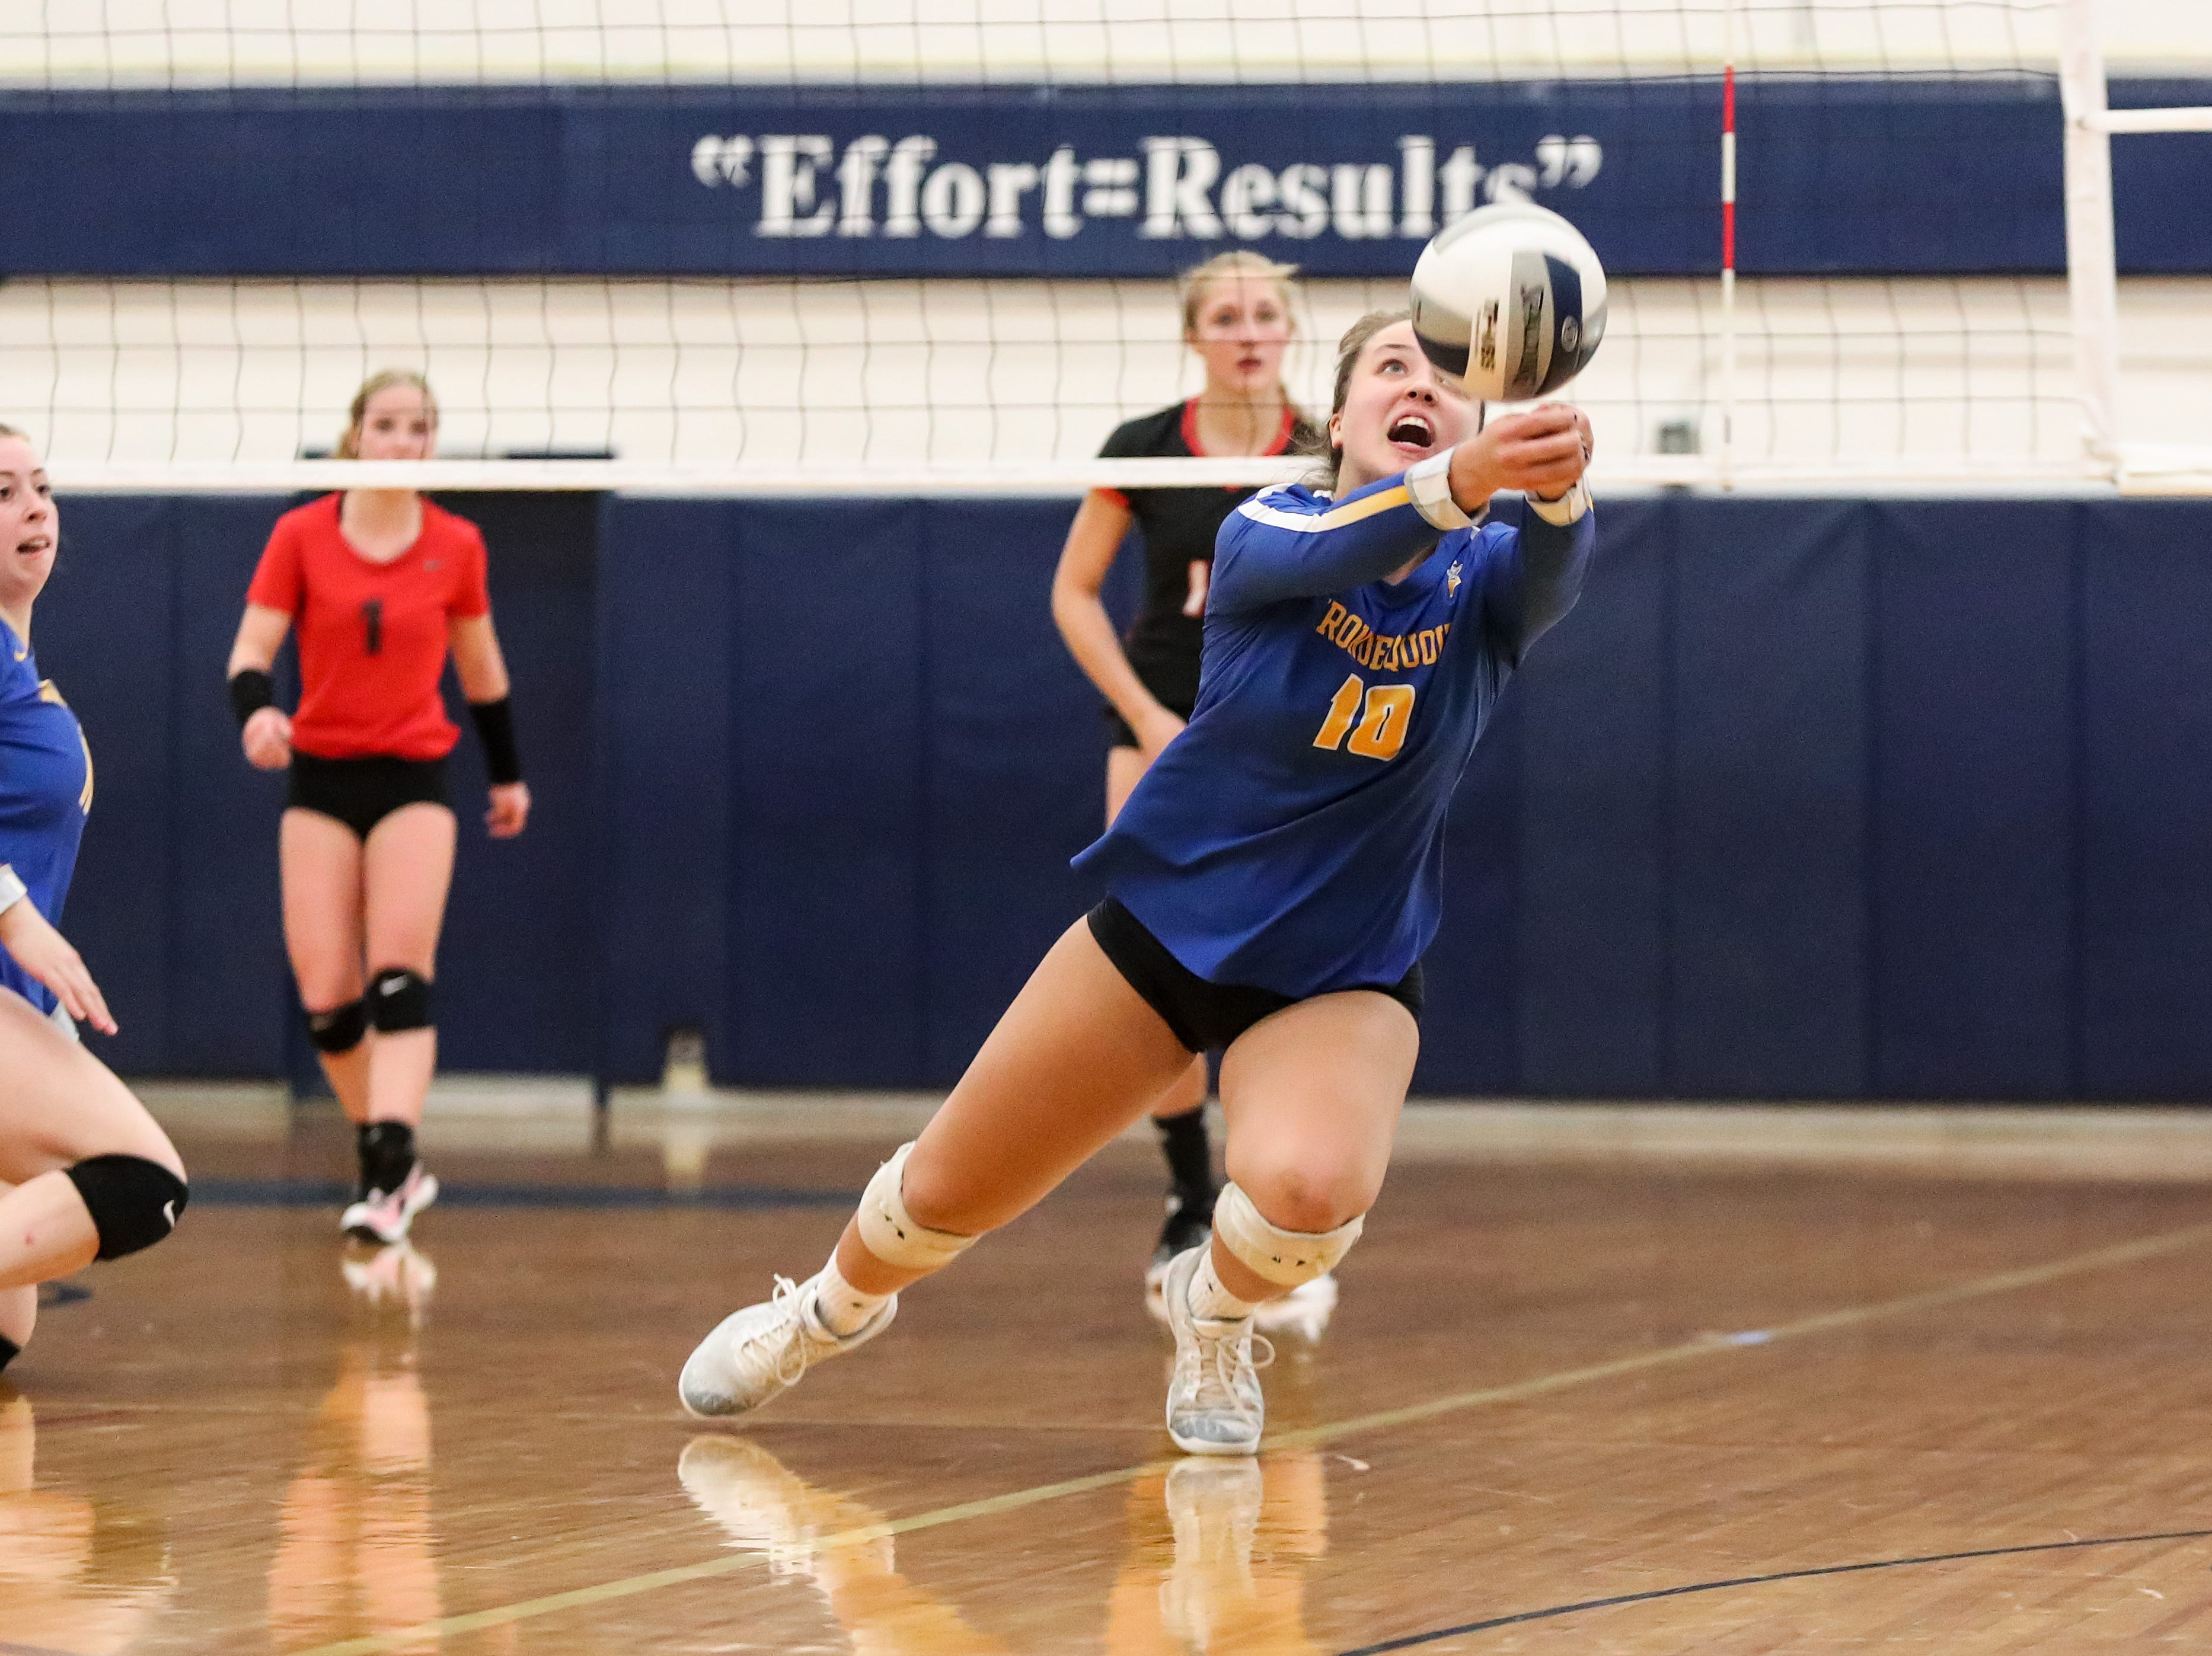 Irondequoit Eagles Emma Sheehan (10) saves the ball from going out of bounds against the Niagara-Wheatfield Falcons during a NYSPHSAA Class A West Regional high school girls volleyball match at Webster Thomas on Nov. 9, 2018.